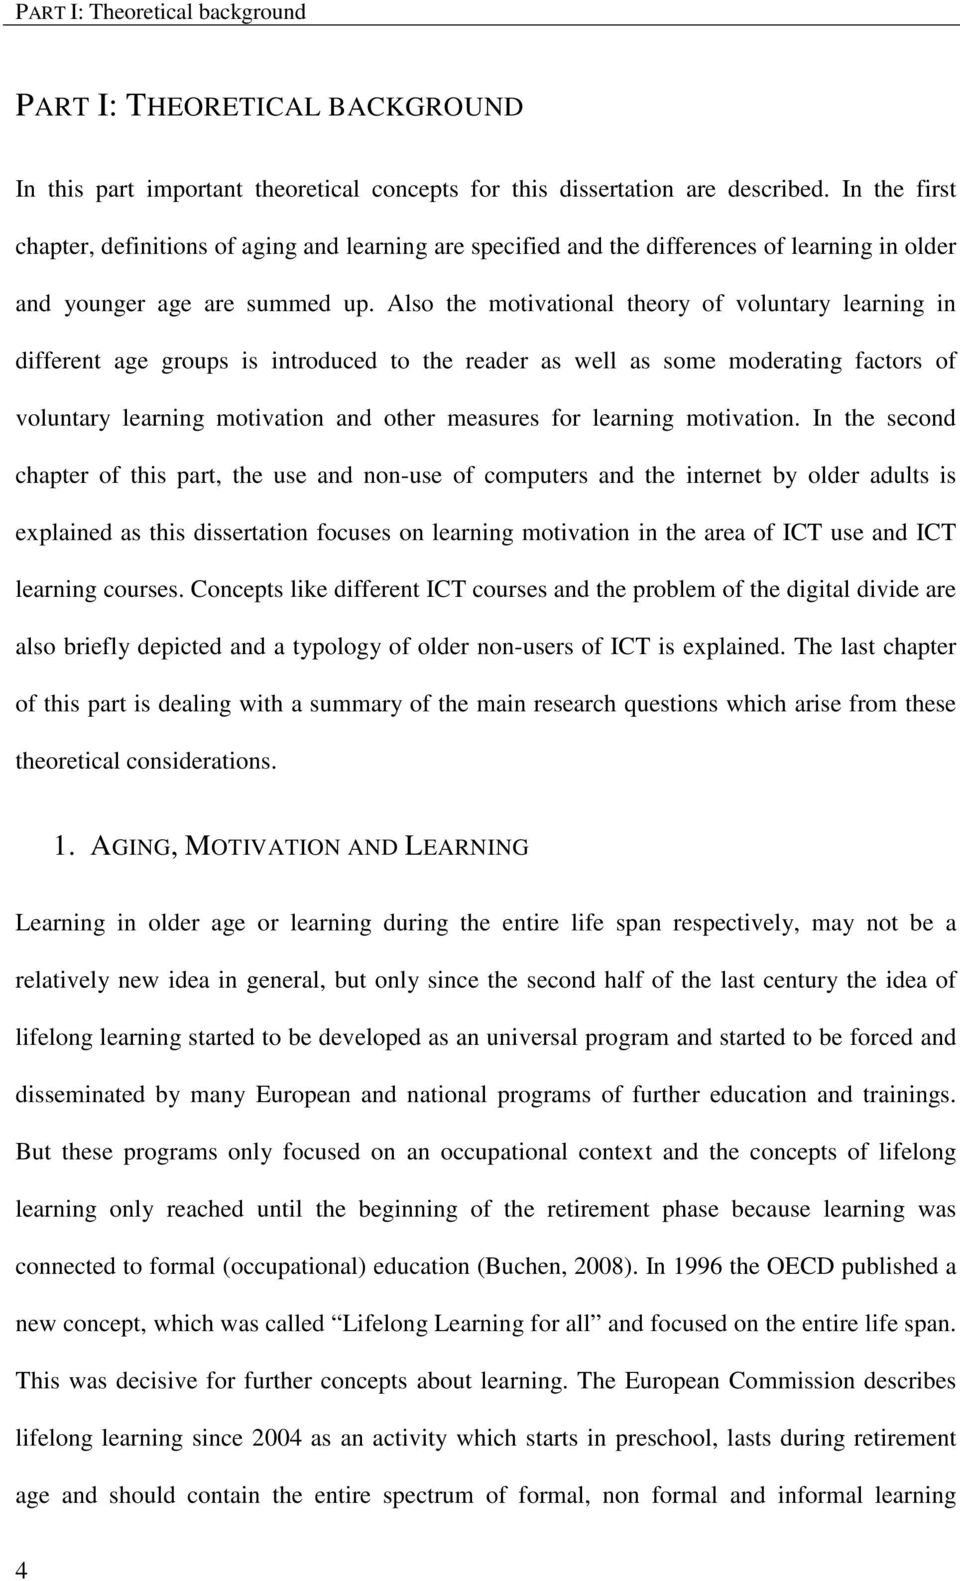 Also the motivational theory of voluntary learning in different age groups is introduced to the reader as well as some moderating factors of voluntary learning motivation and other measures for